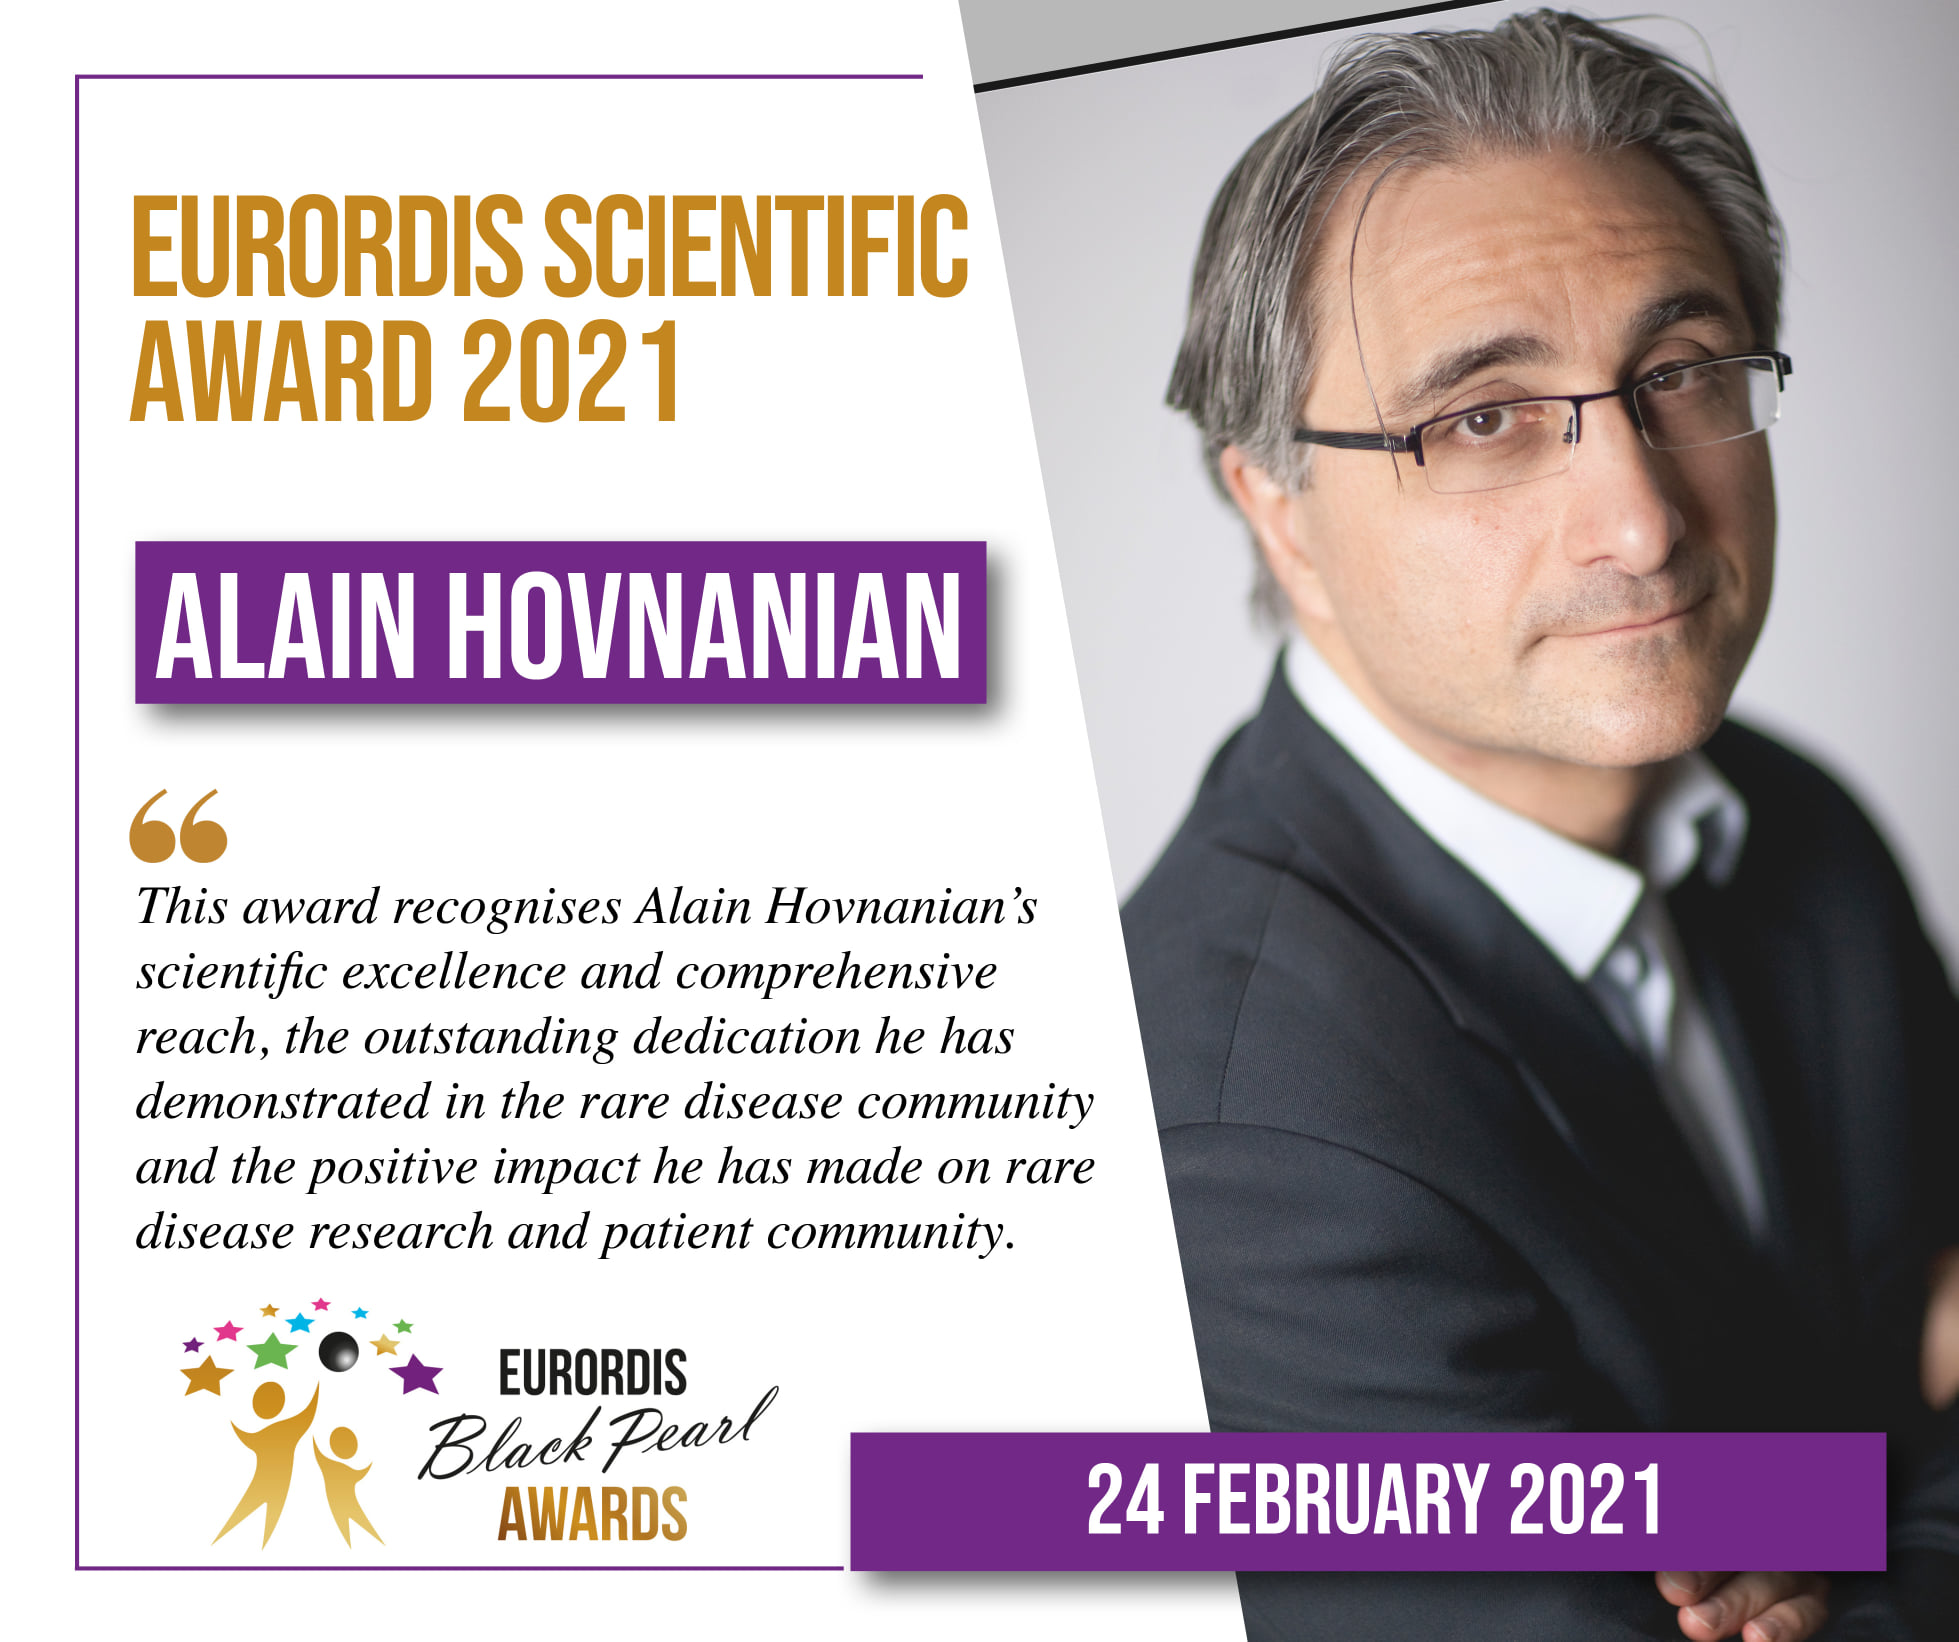 Le Professeur Alain Hovnanian aux « EURORDIS Black Pearl scientific award 2021 »